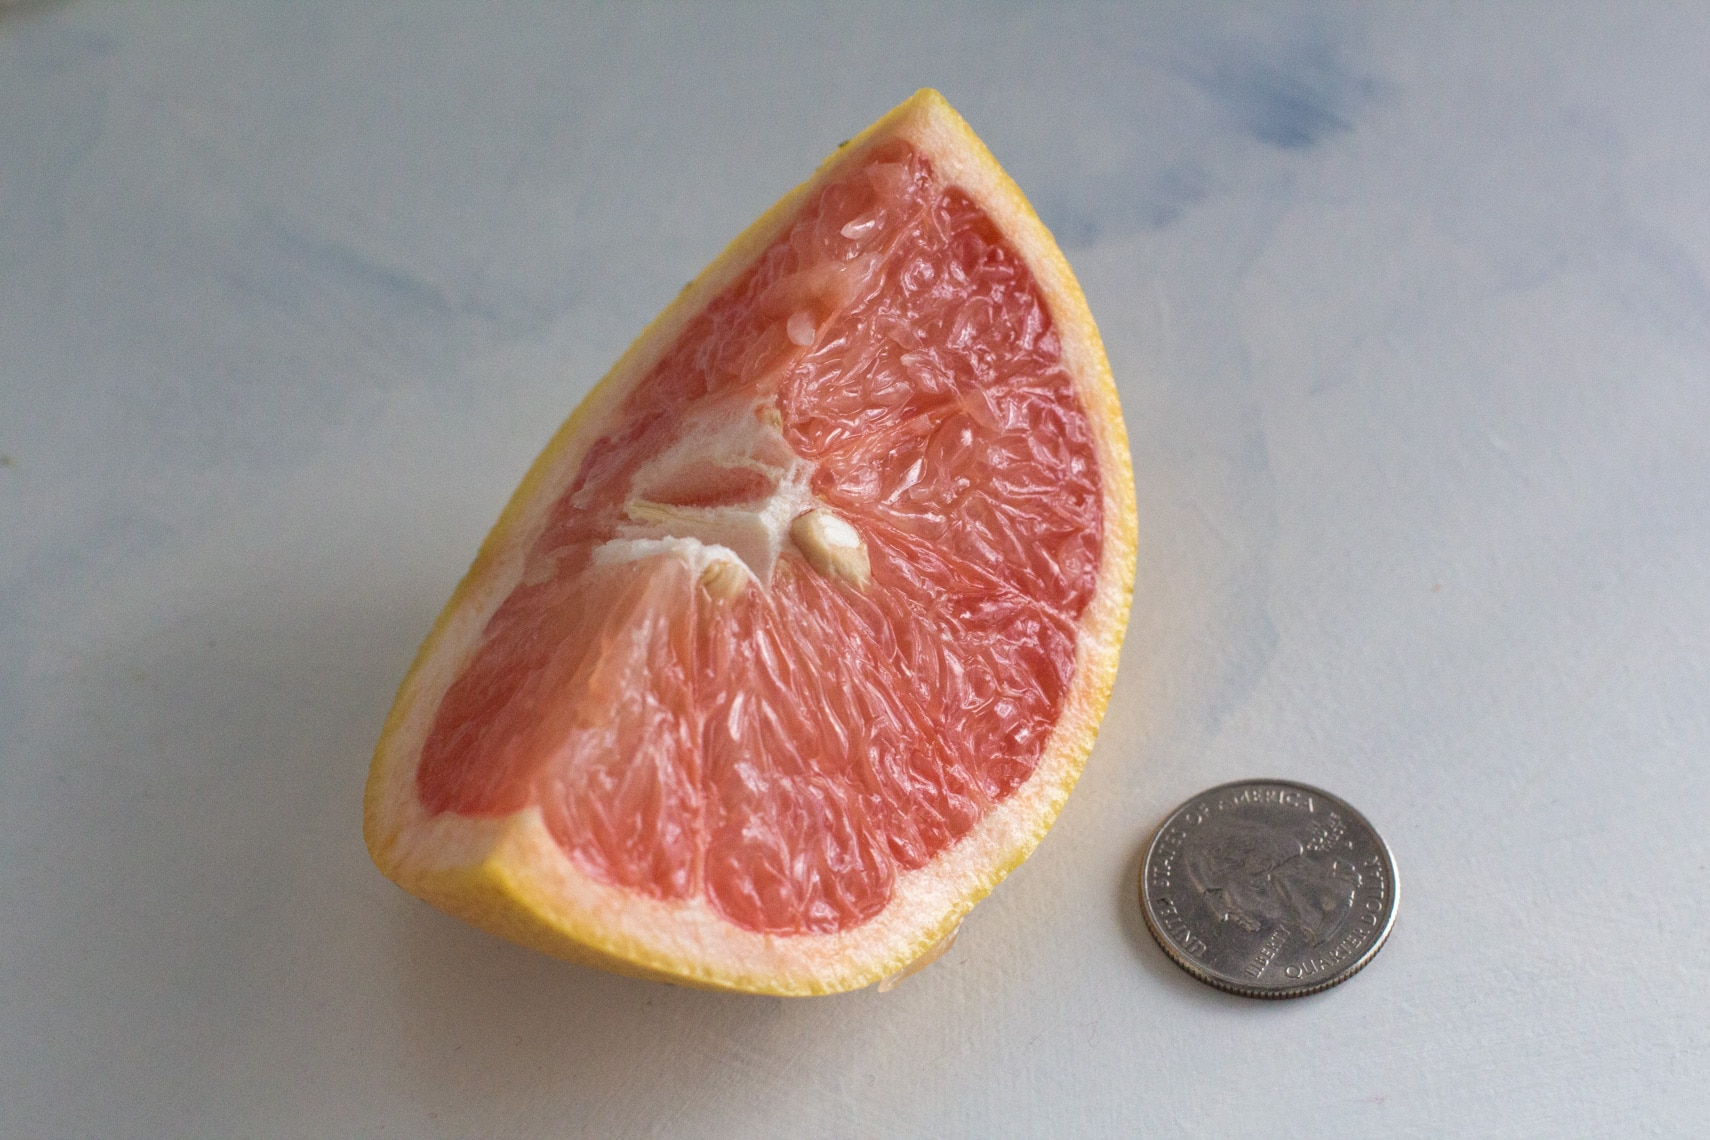 80 grams of grapefruit is low FODMAP. Here is an 80 g wedge next to a quarter for perspective